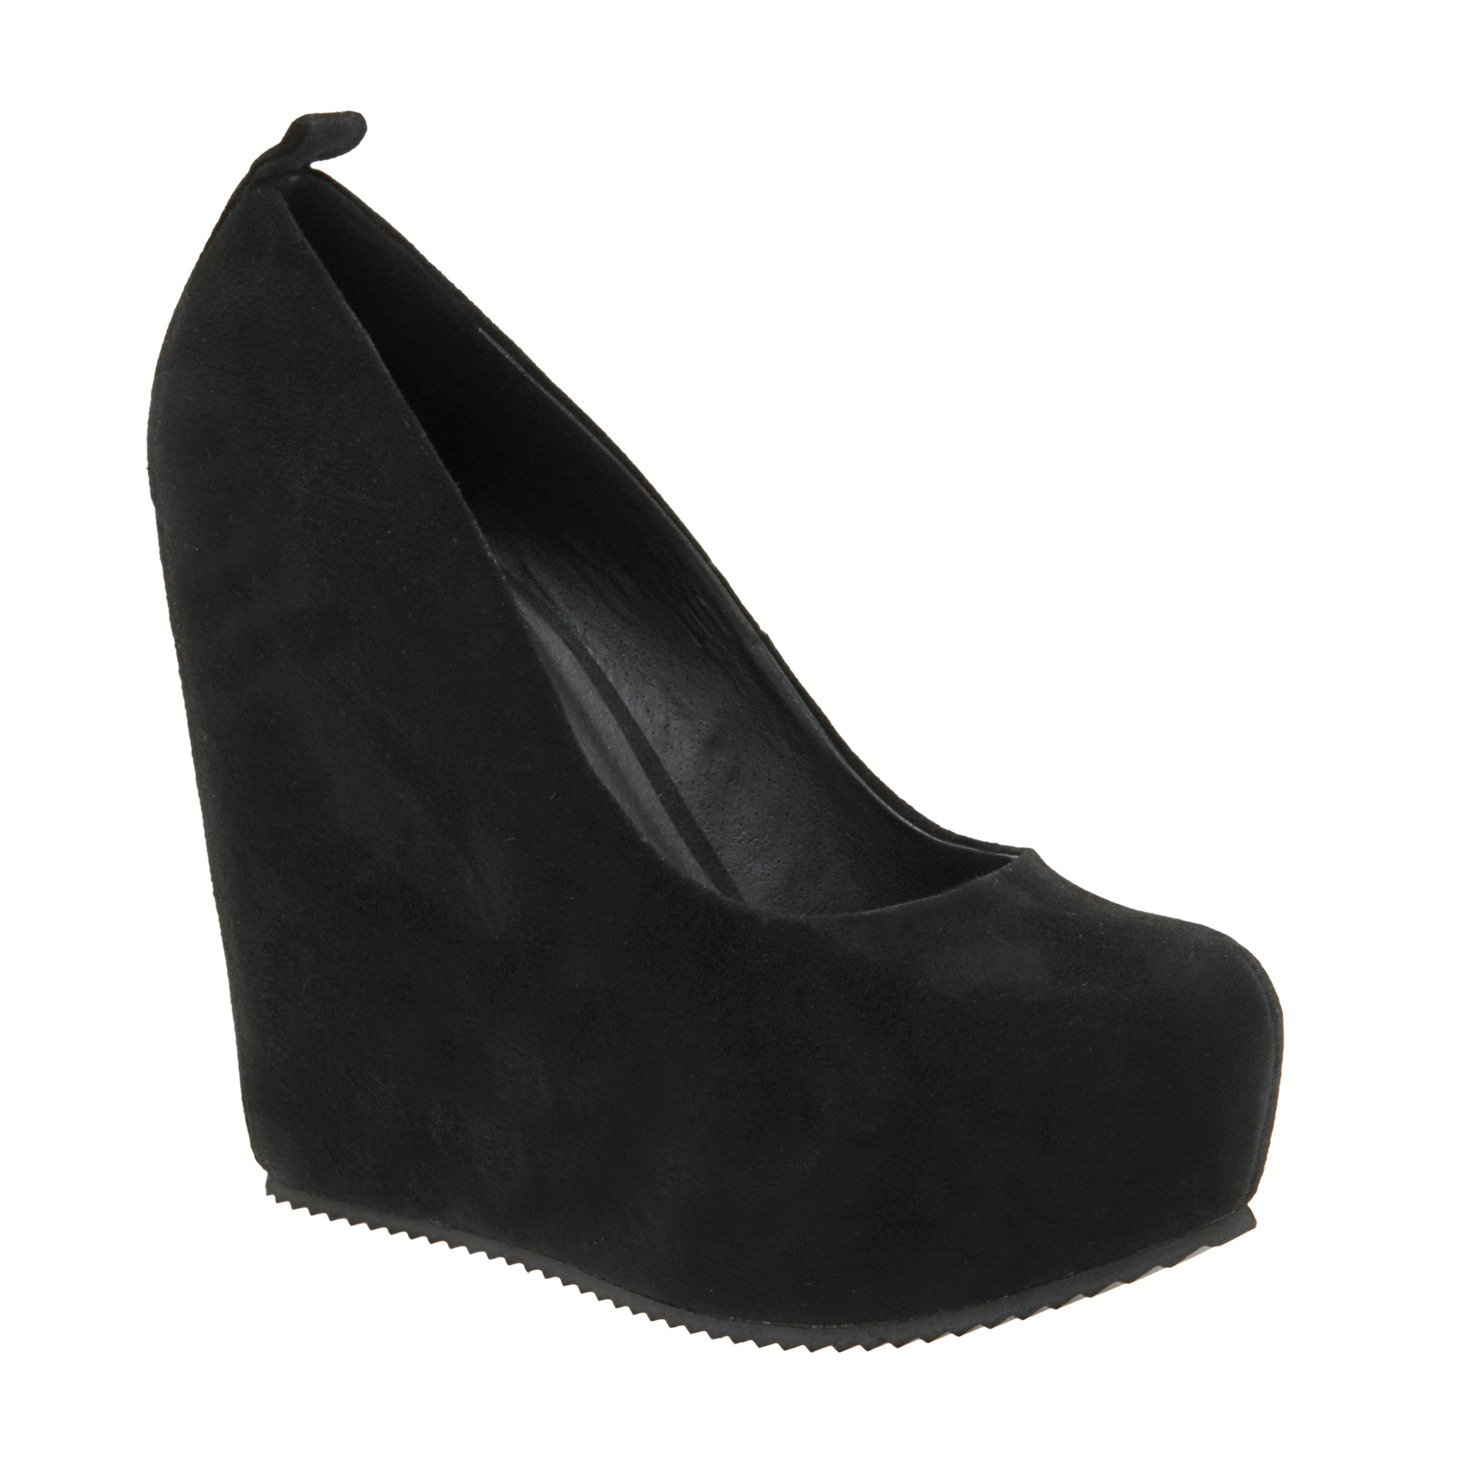 excshoesme wanted black wedge pumps